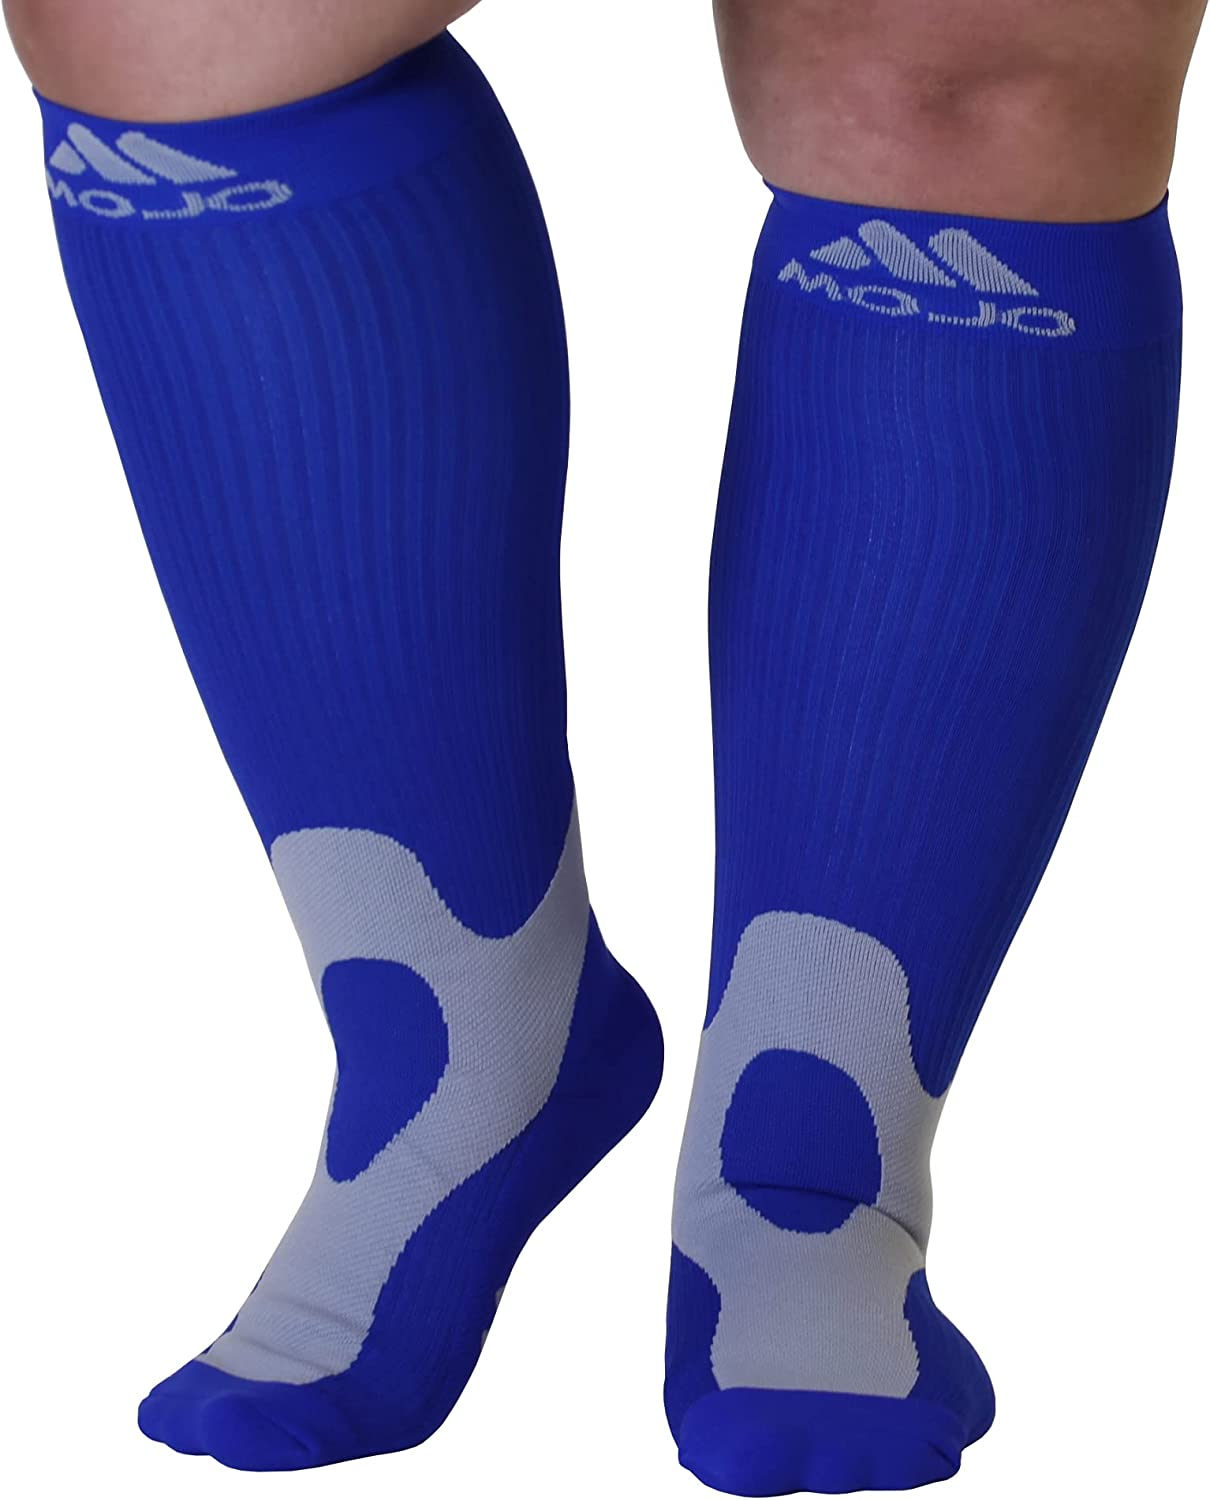 Mojo Coolmax Recovery NEW before selling Performance Compressio discount mmHg 20-30 Sports